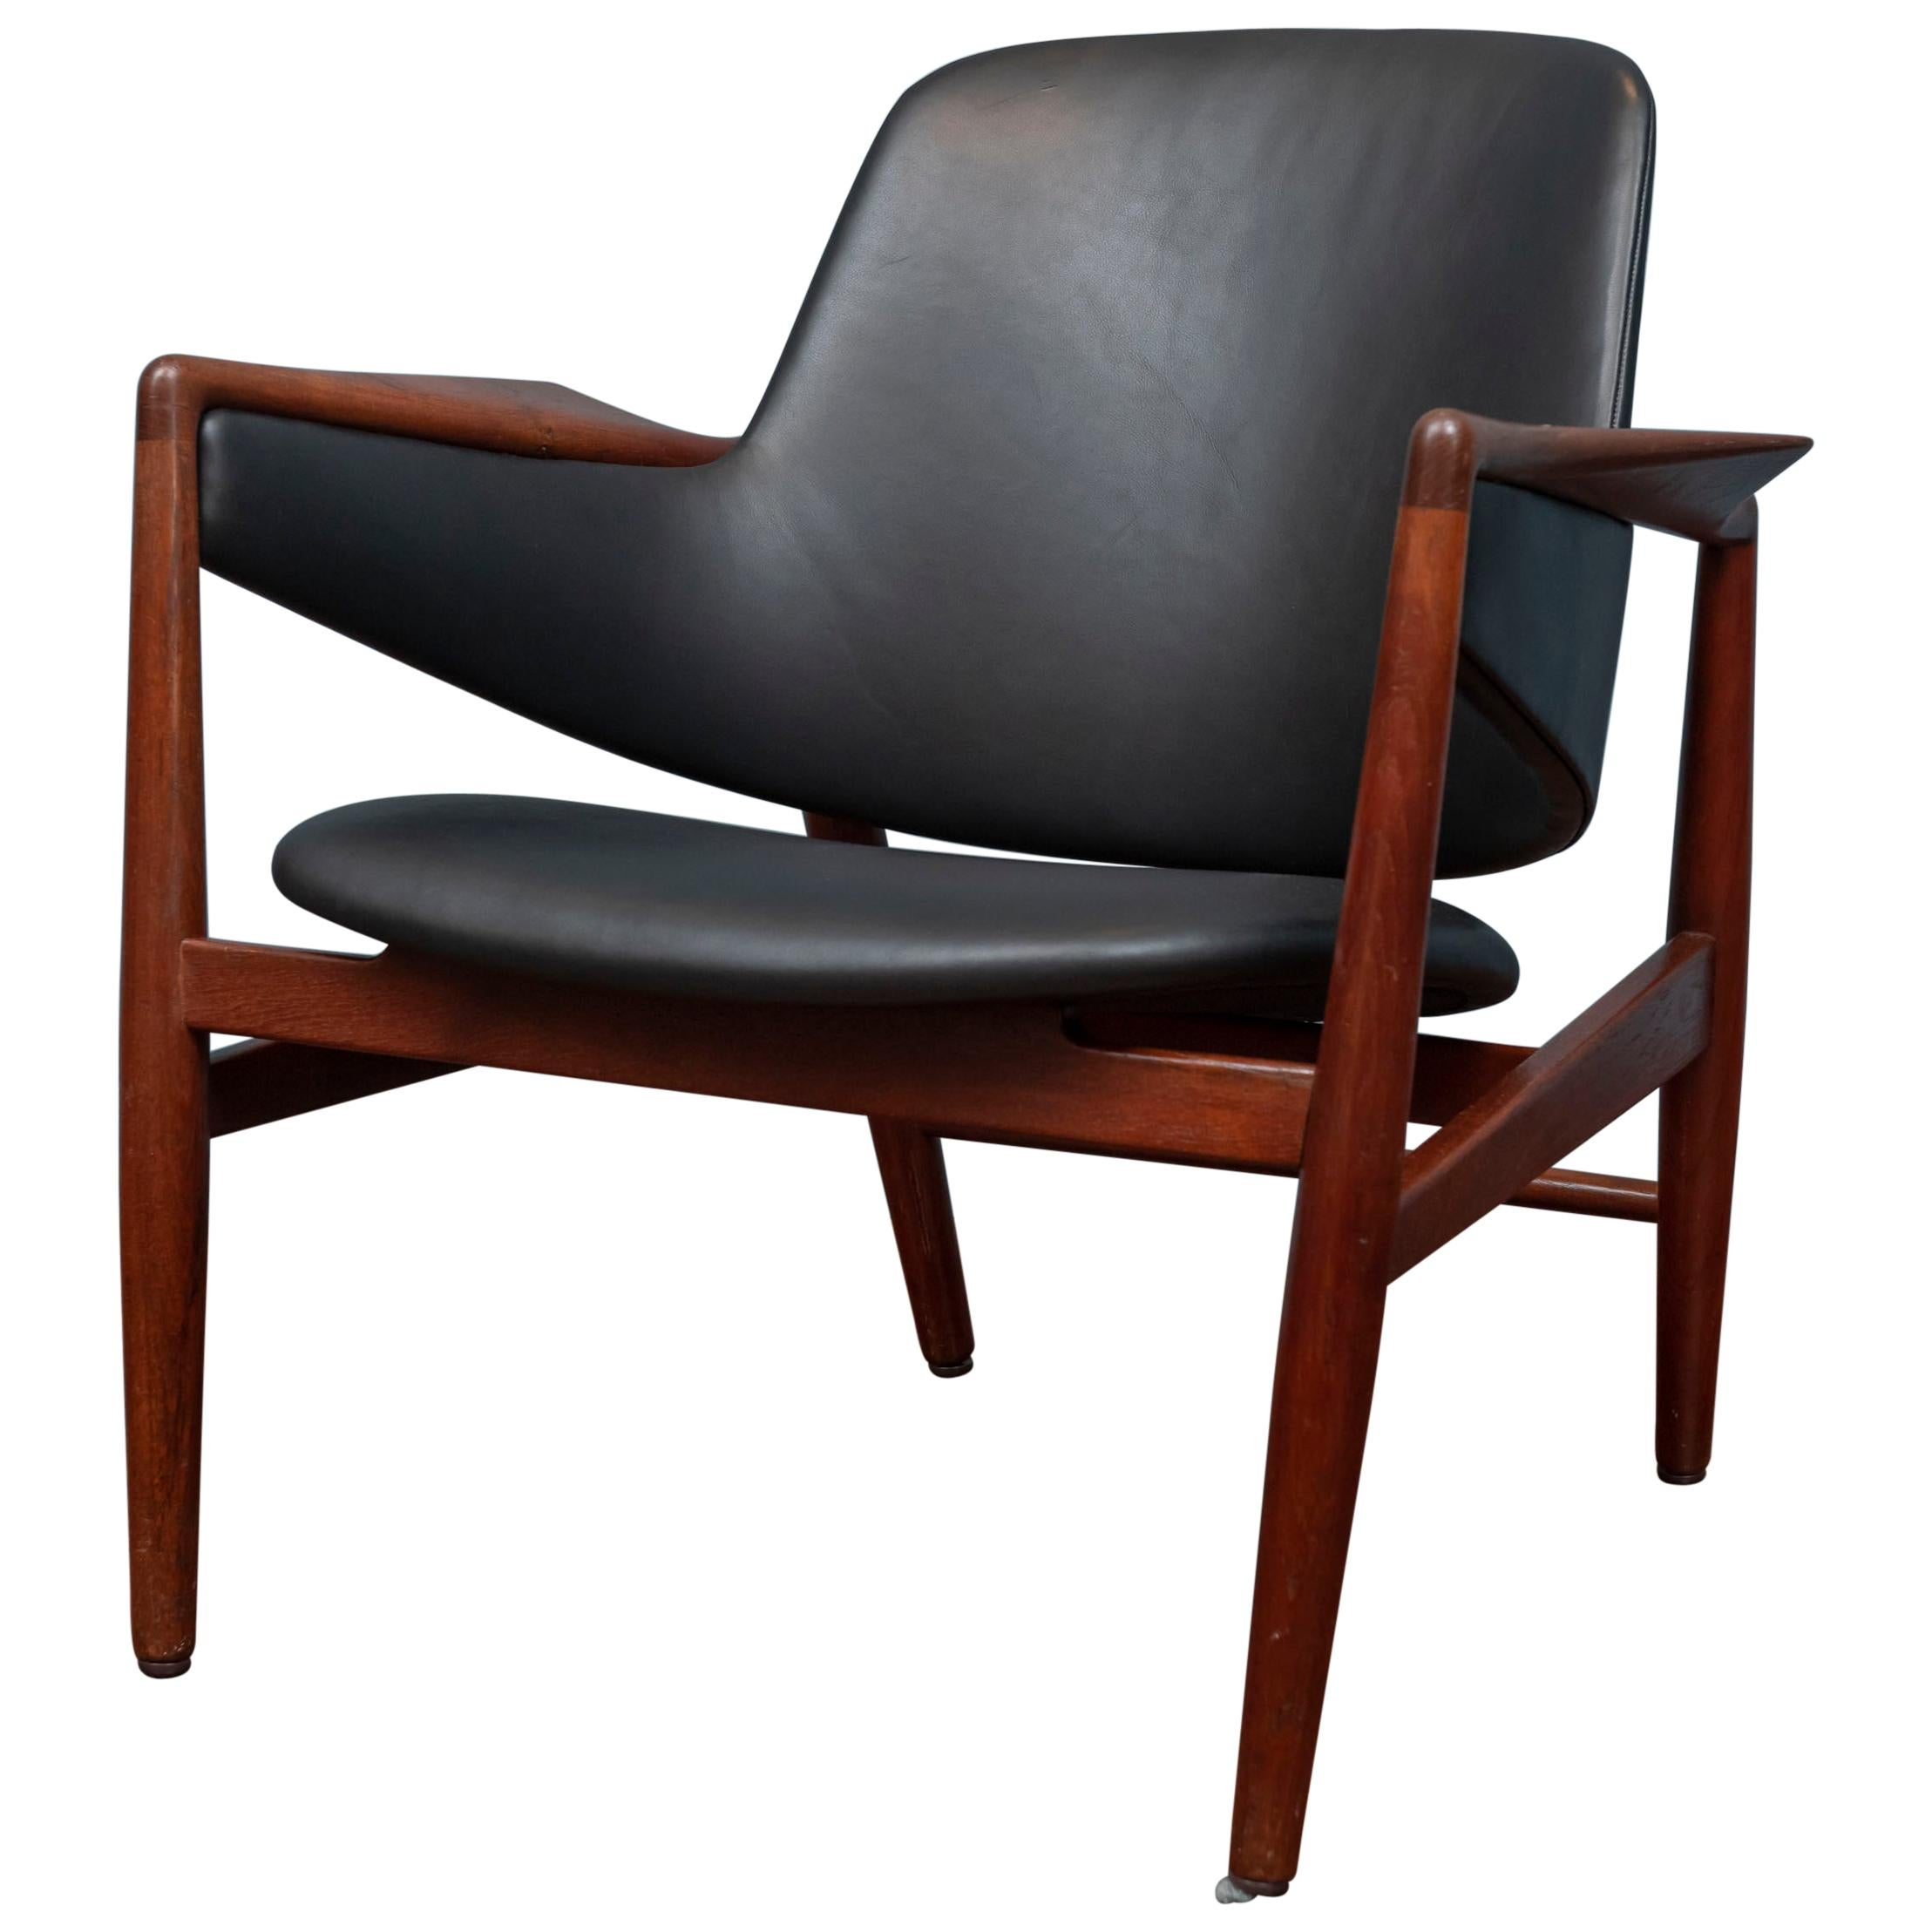 Ib Kofod-Larsen Teak Lounge Chair for Christensen & Larsen